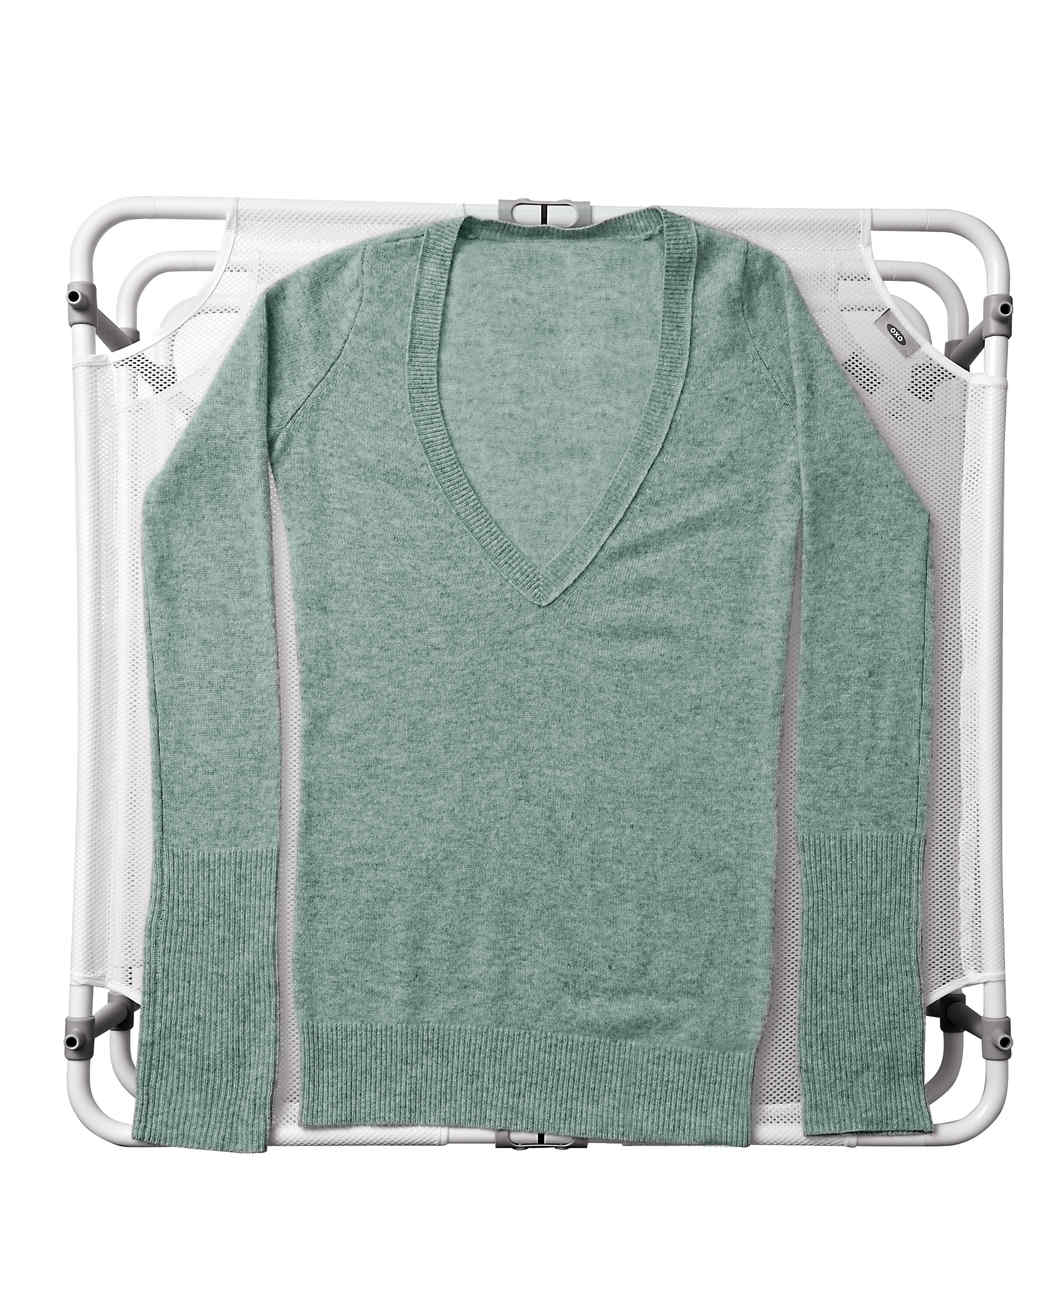 rack-with-sweater-143-d111589-r.jpg